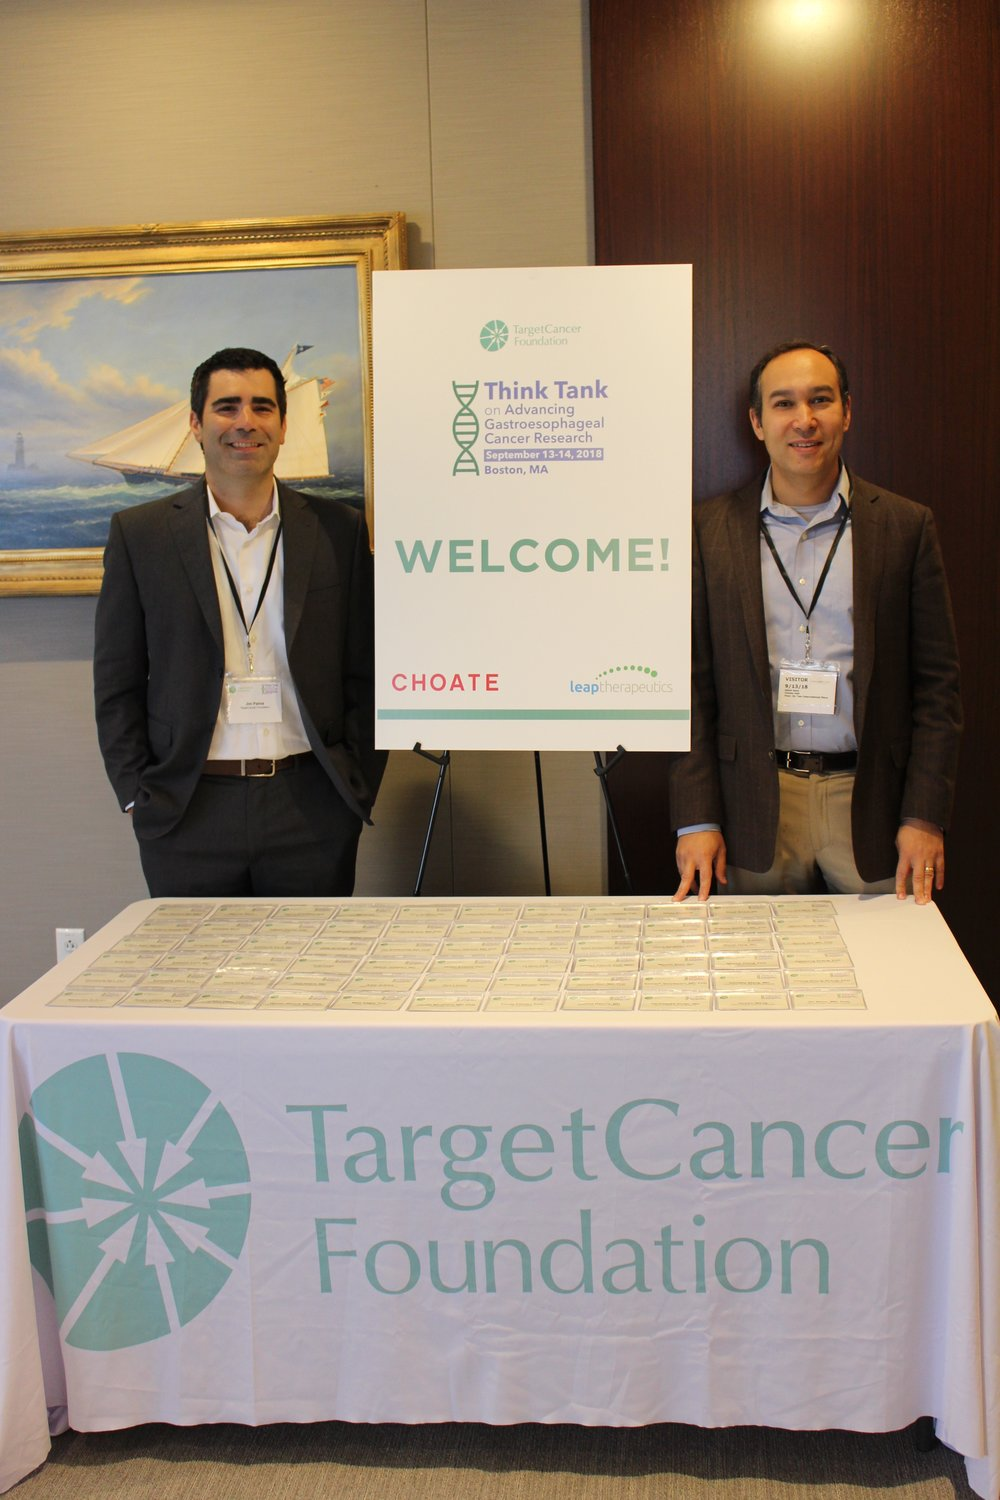 Jim Palma, left, and Adam Bass, MD, an esophageal cancer researcher supported by the foundation, at the 2018 Think Tank on Advancing Gastroesophageal Cancer Research.